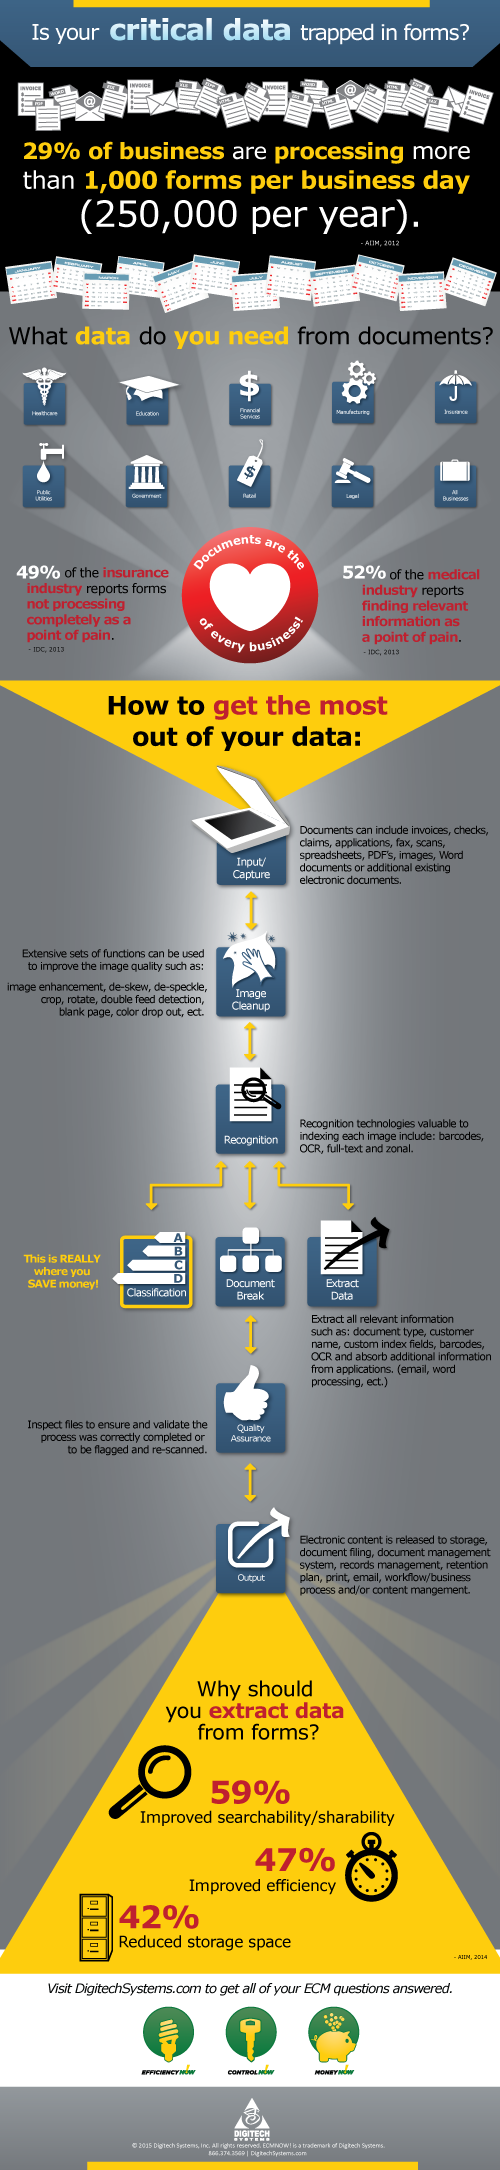 FormProcessing_Infographic_Web